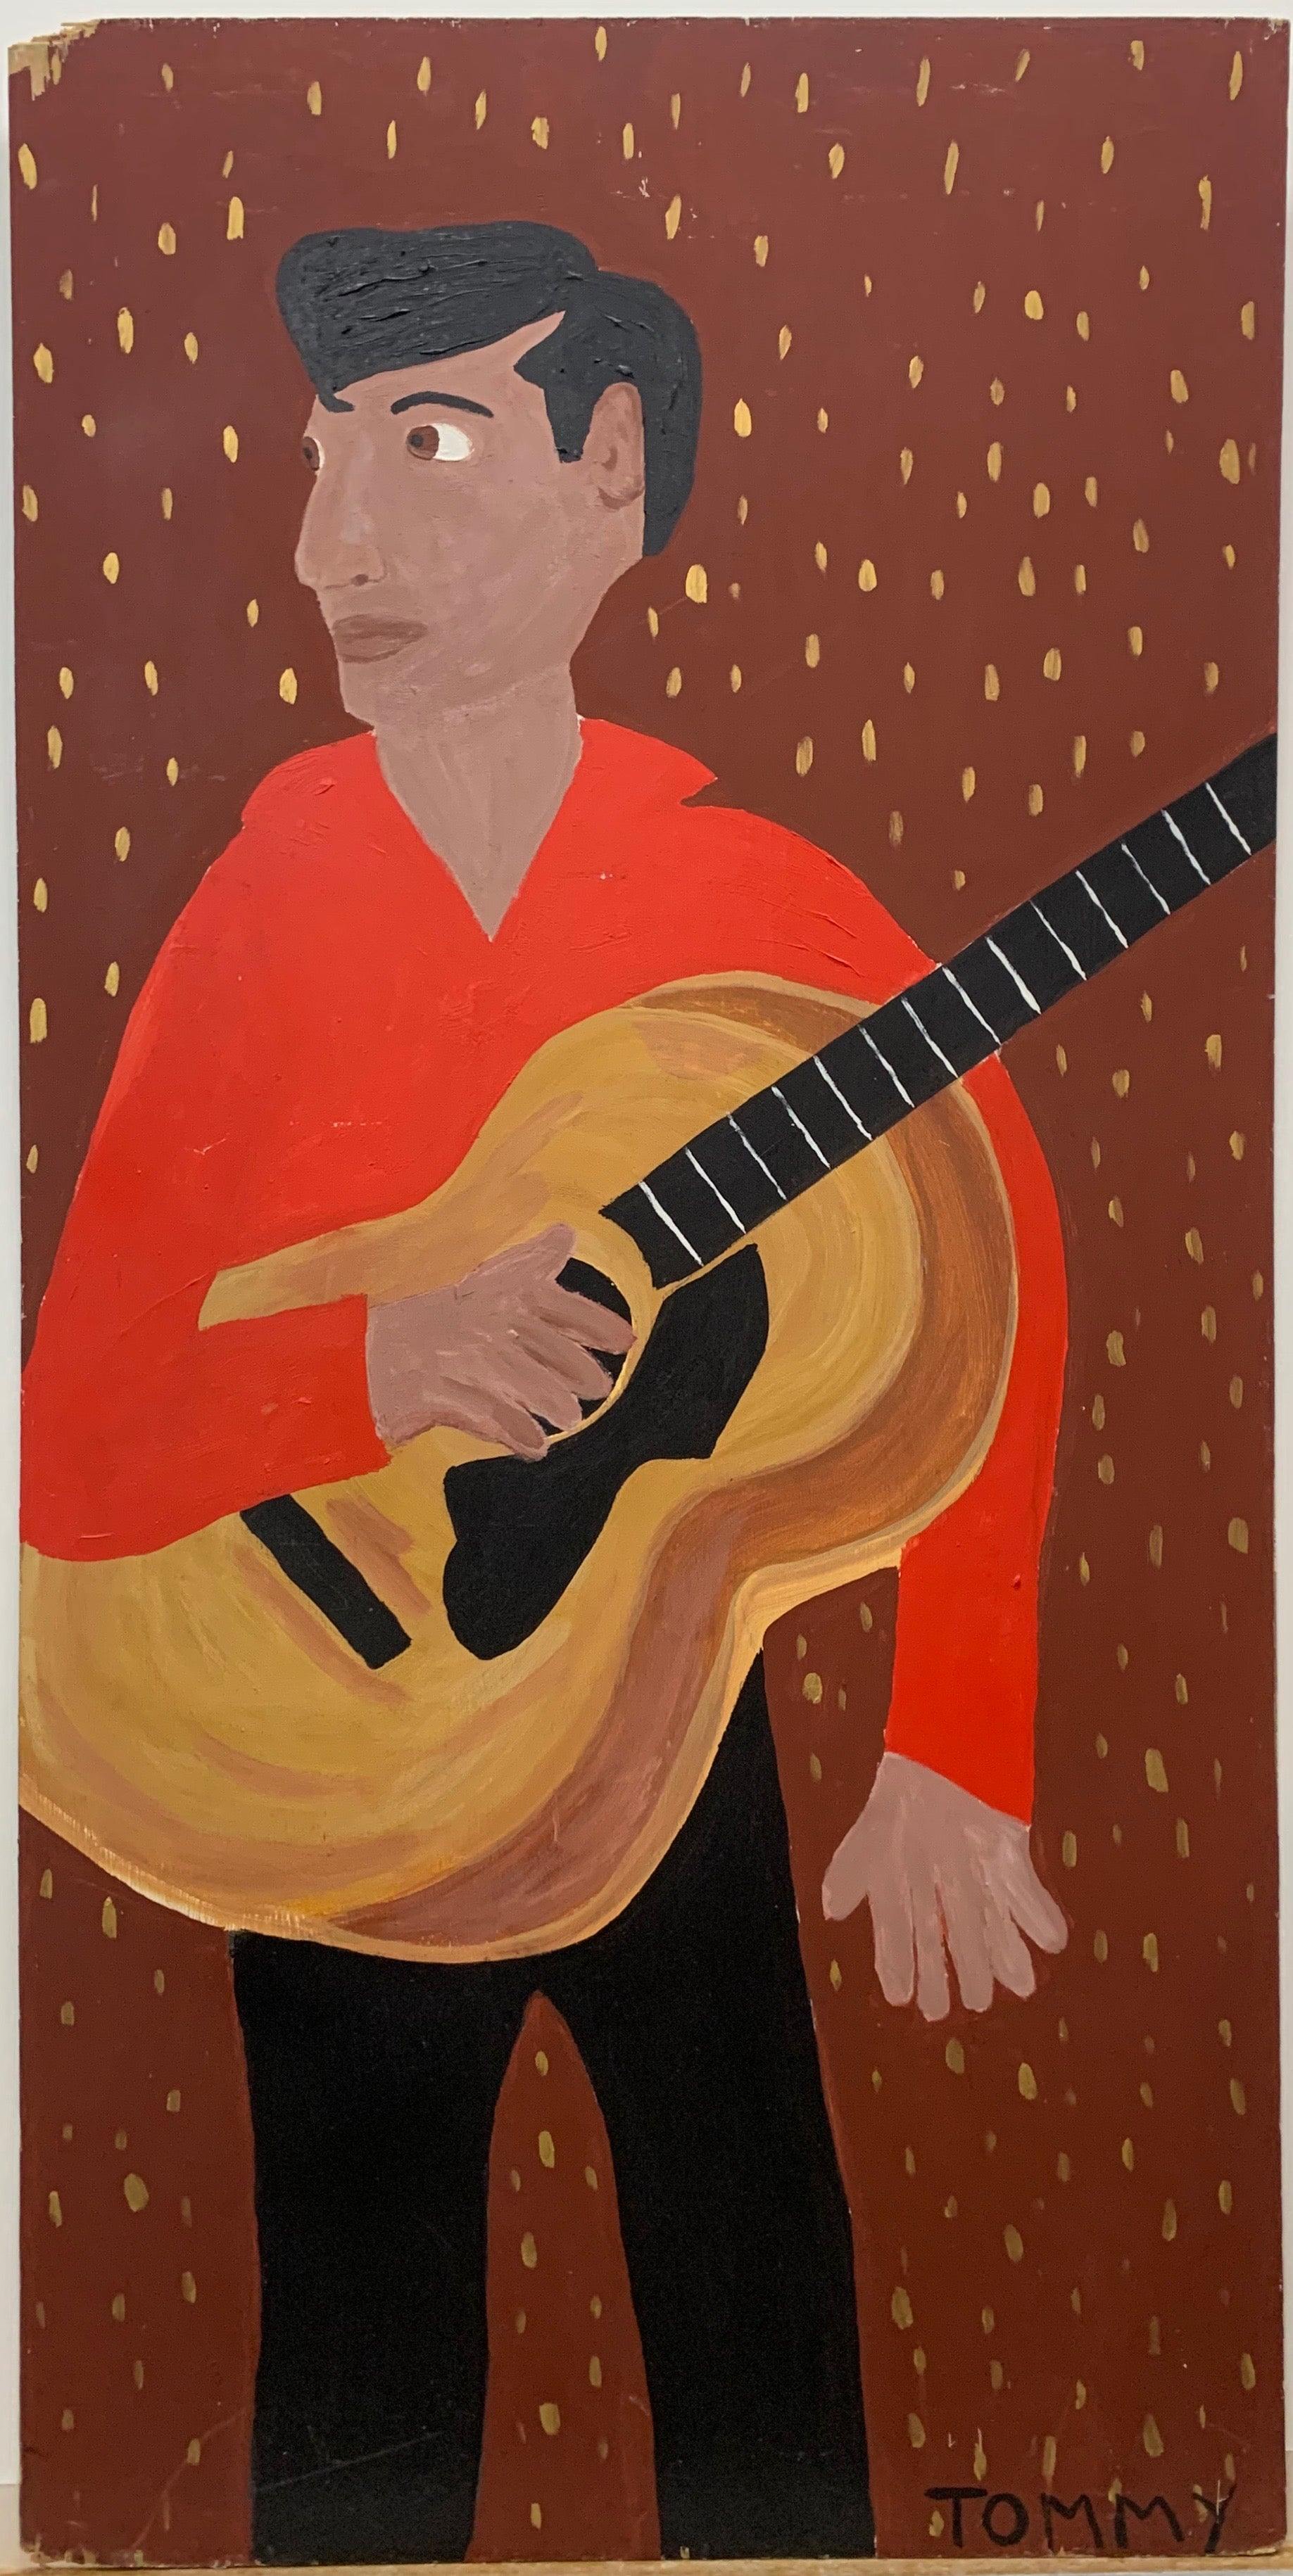 A Tommy Cheng portrait of Elvis Presley with a guitar and wearing a red shirt and black slacks.